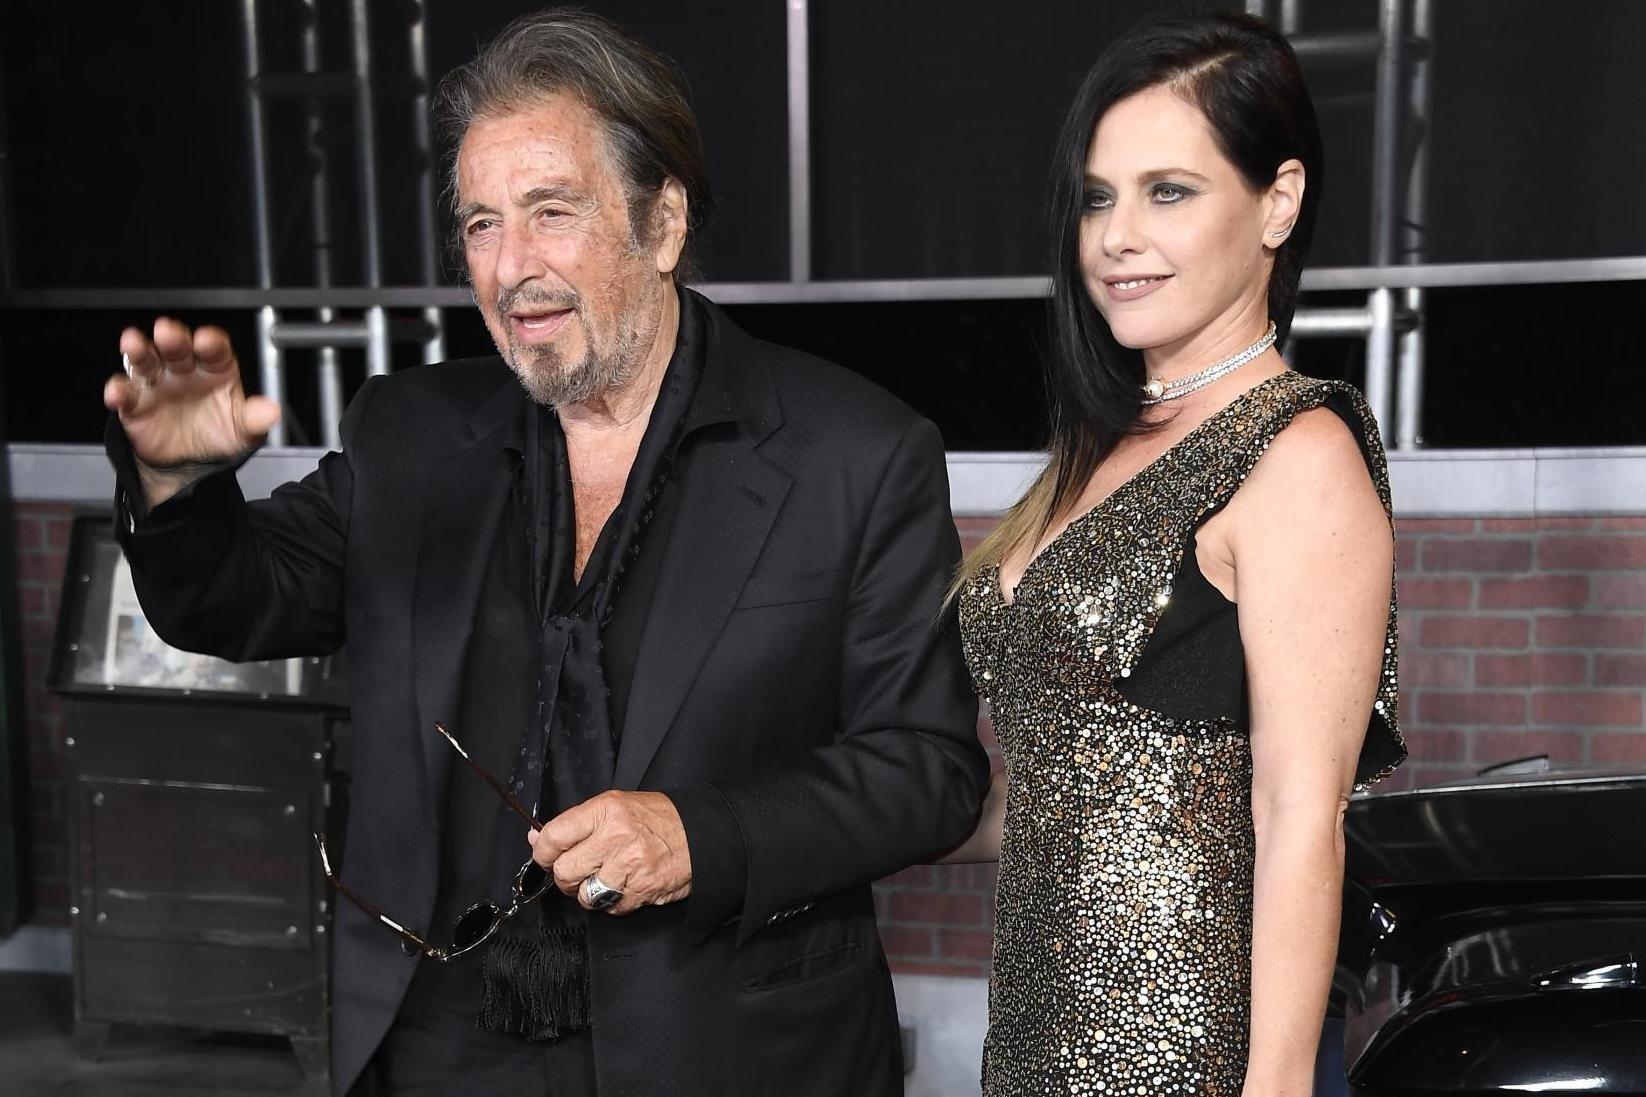 Al Pacino's girlfriend ends relationship because 39-year age gap was 'difficult'